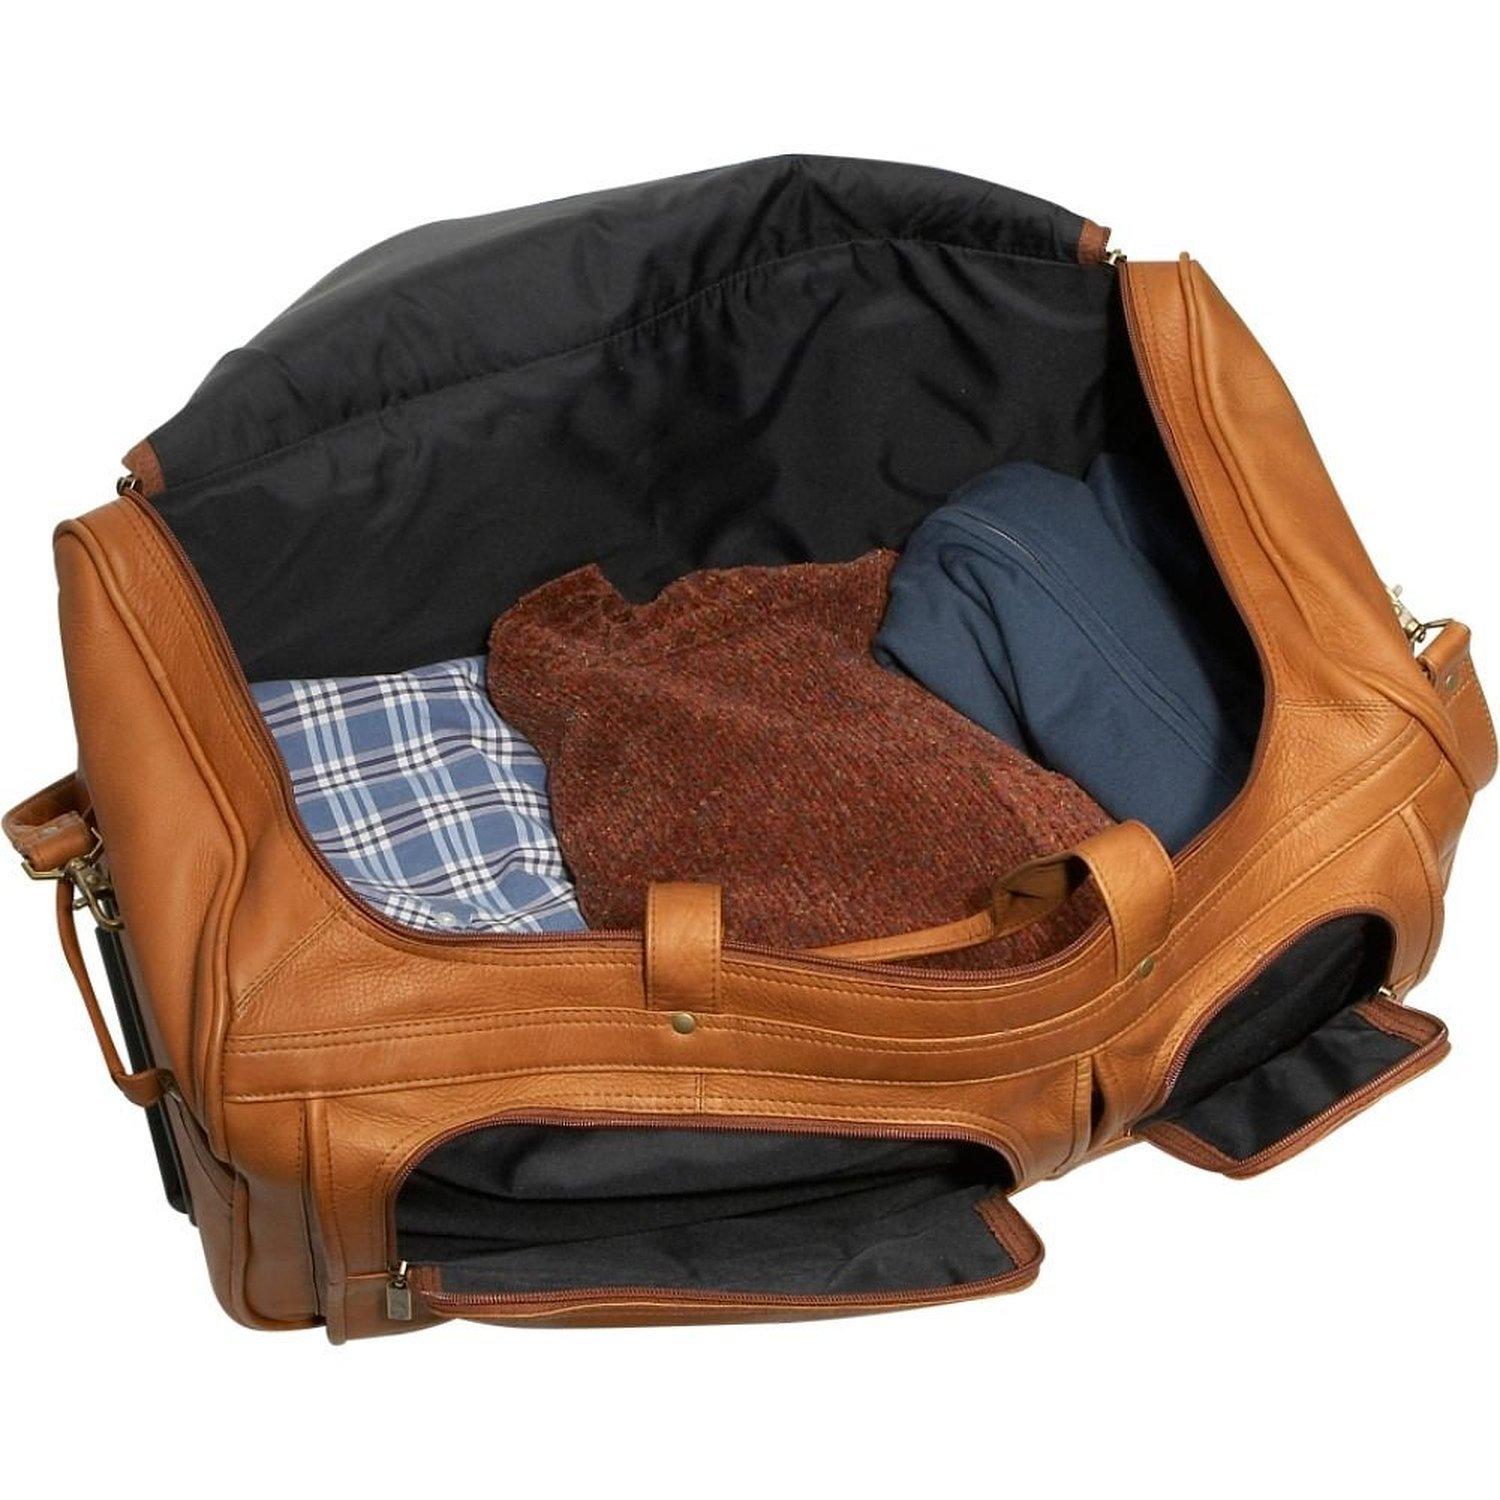 David King Leather 20 Rolling Duffel Bag in Cafe